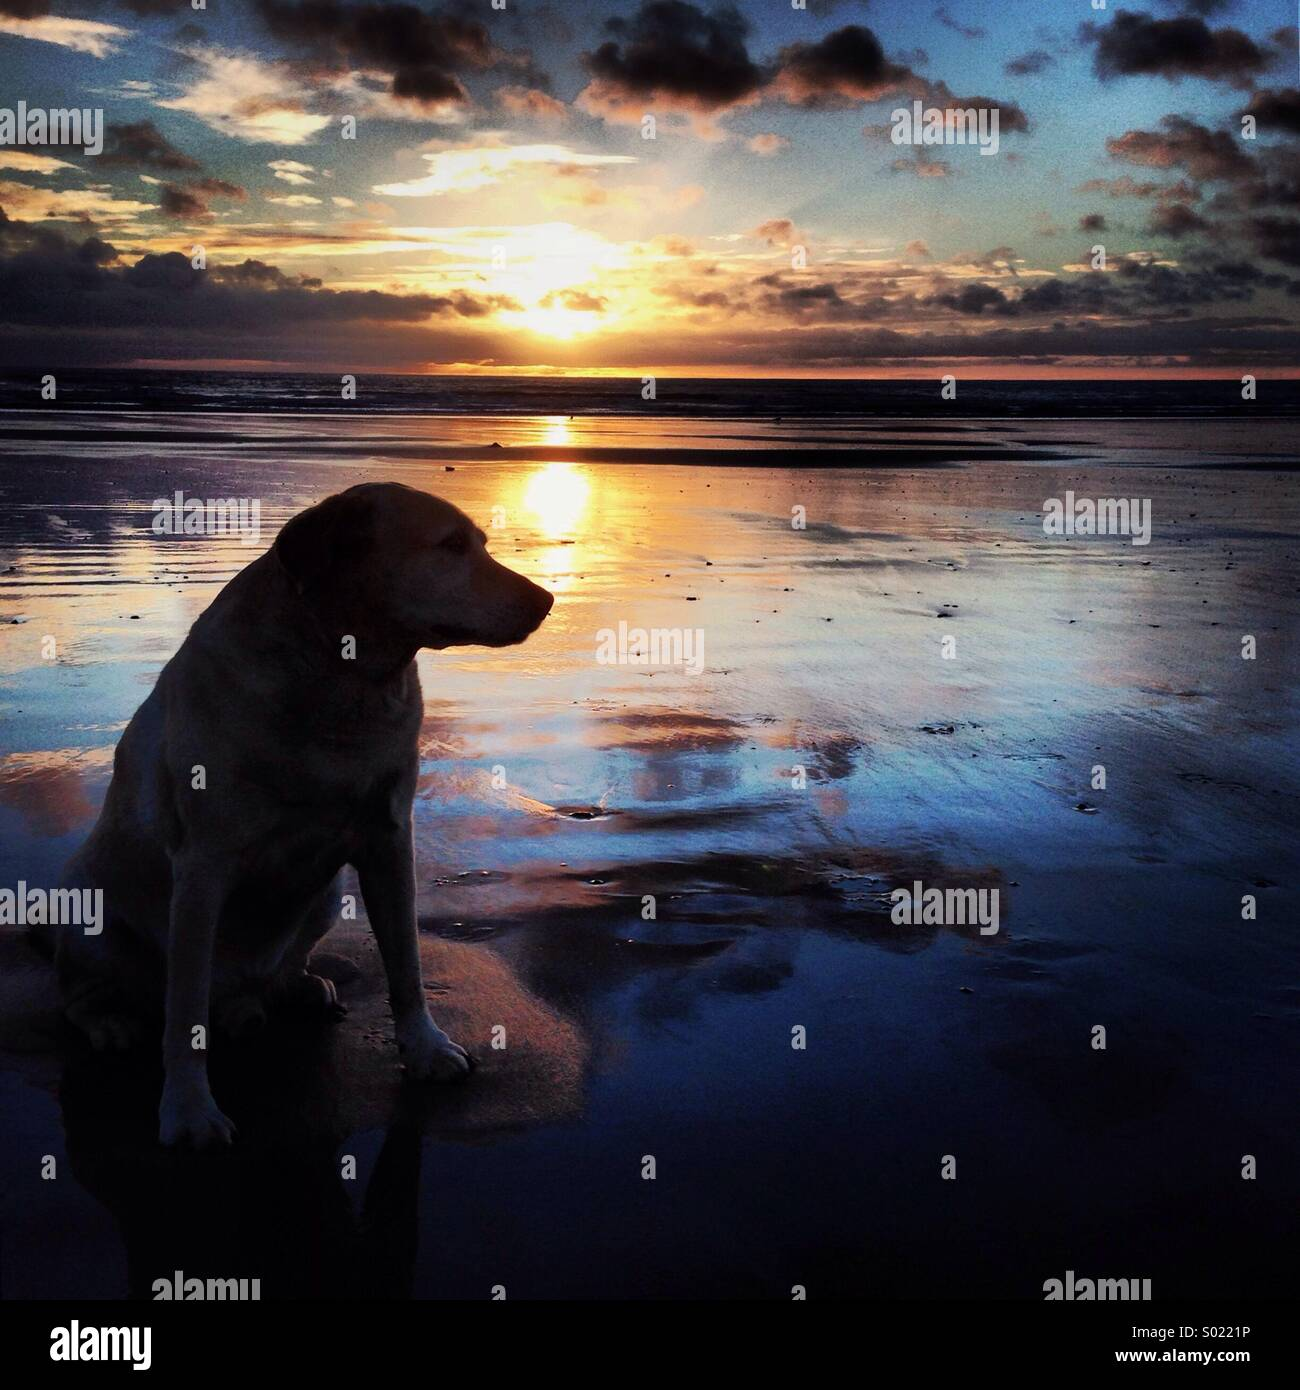 Dog at sunrise - Stock Image